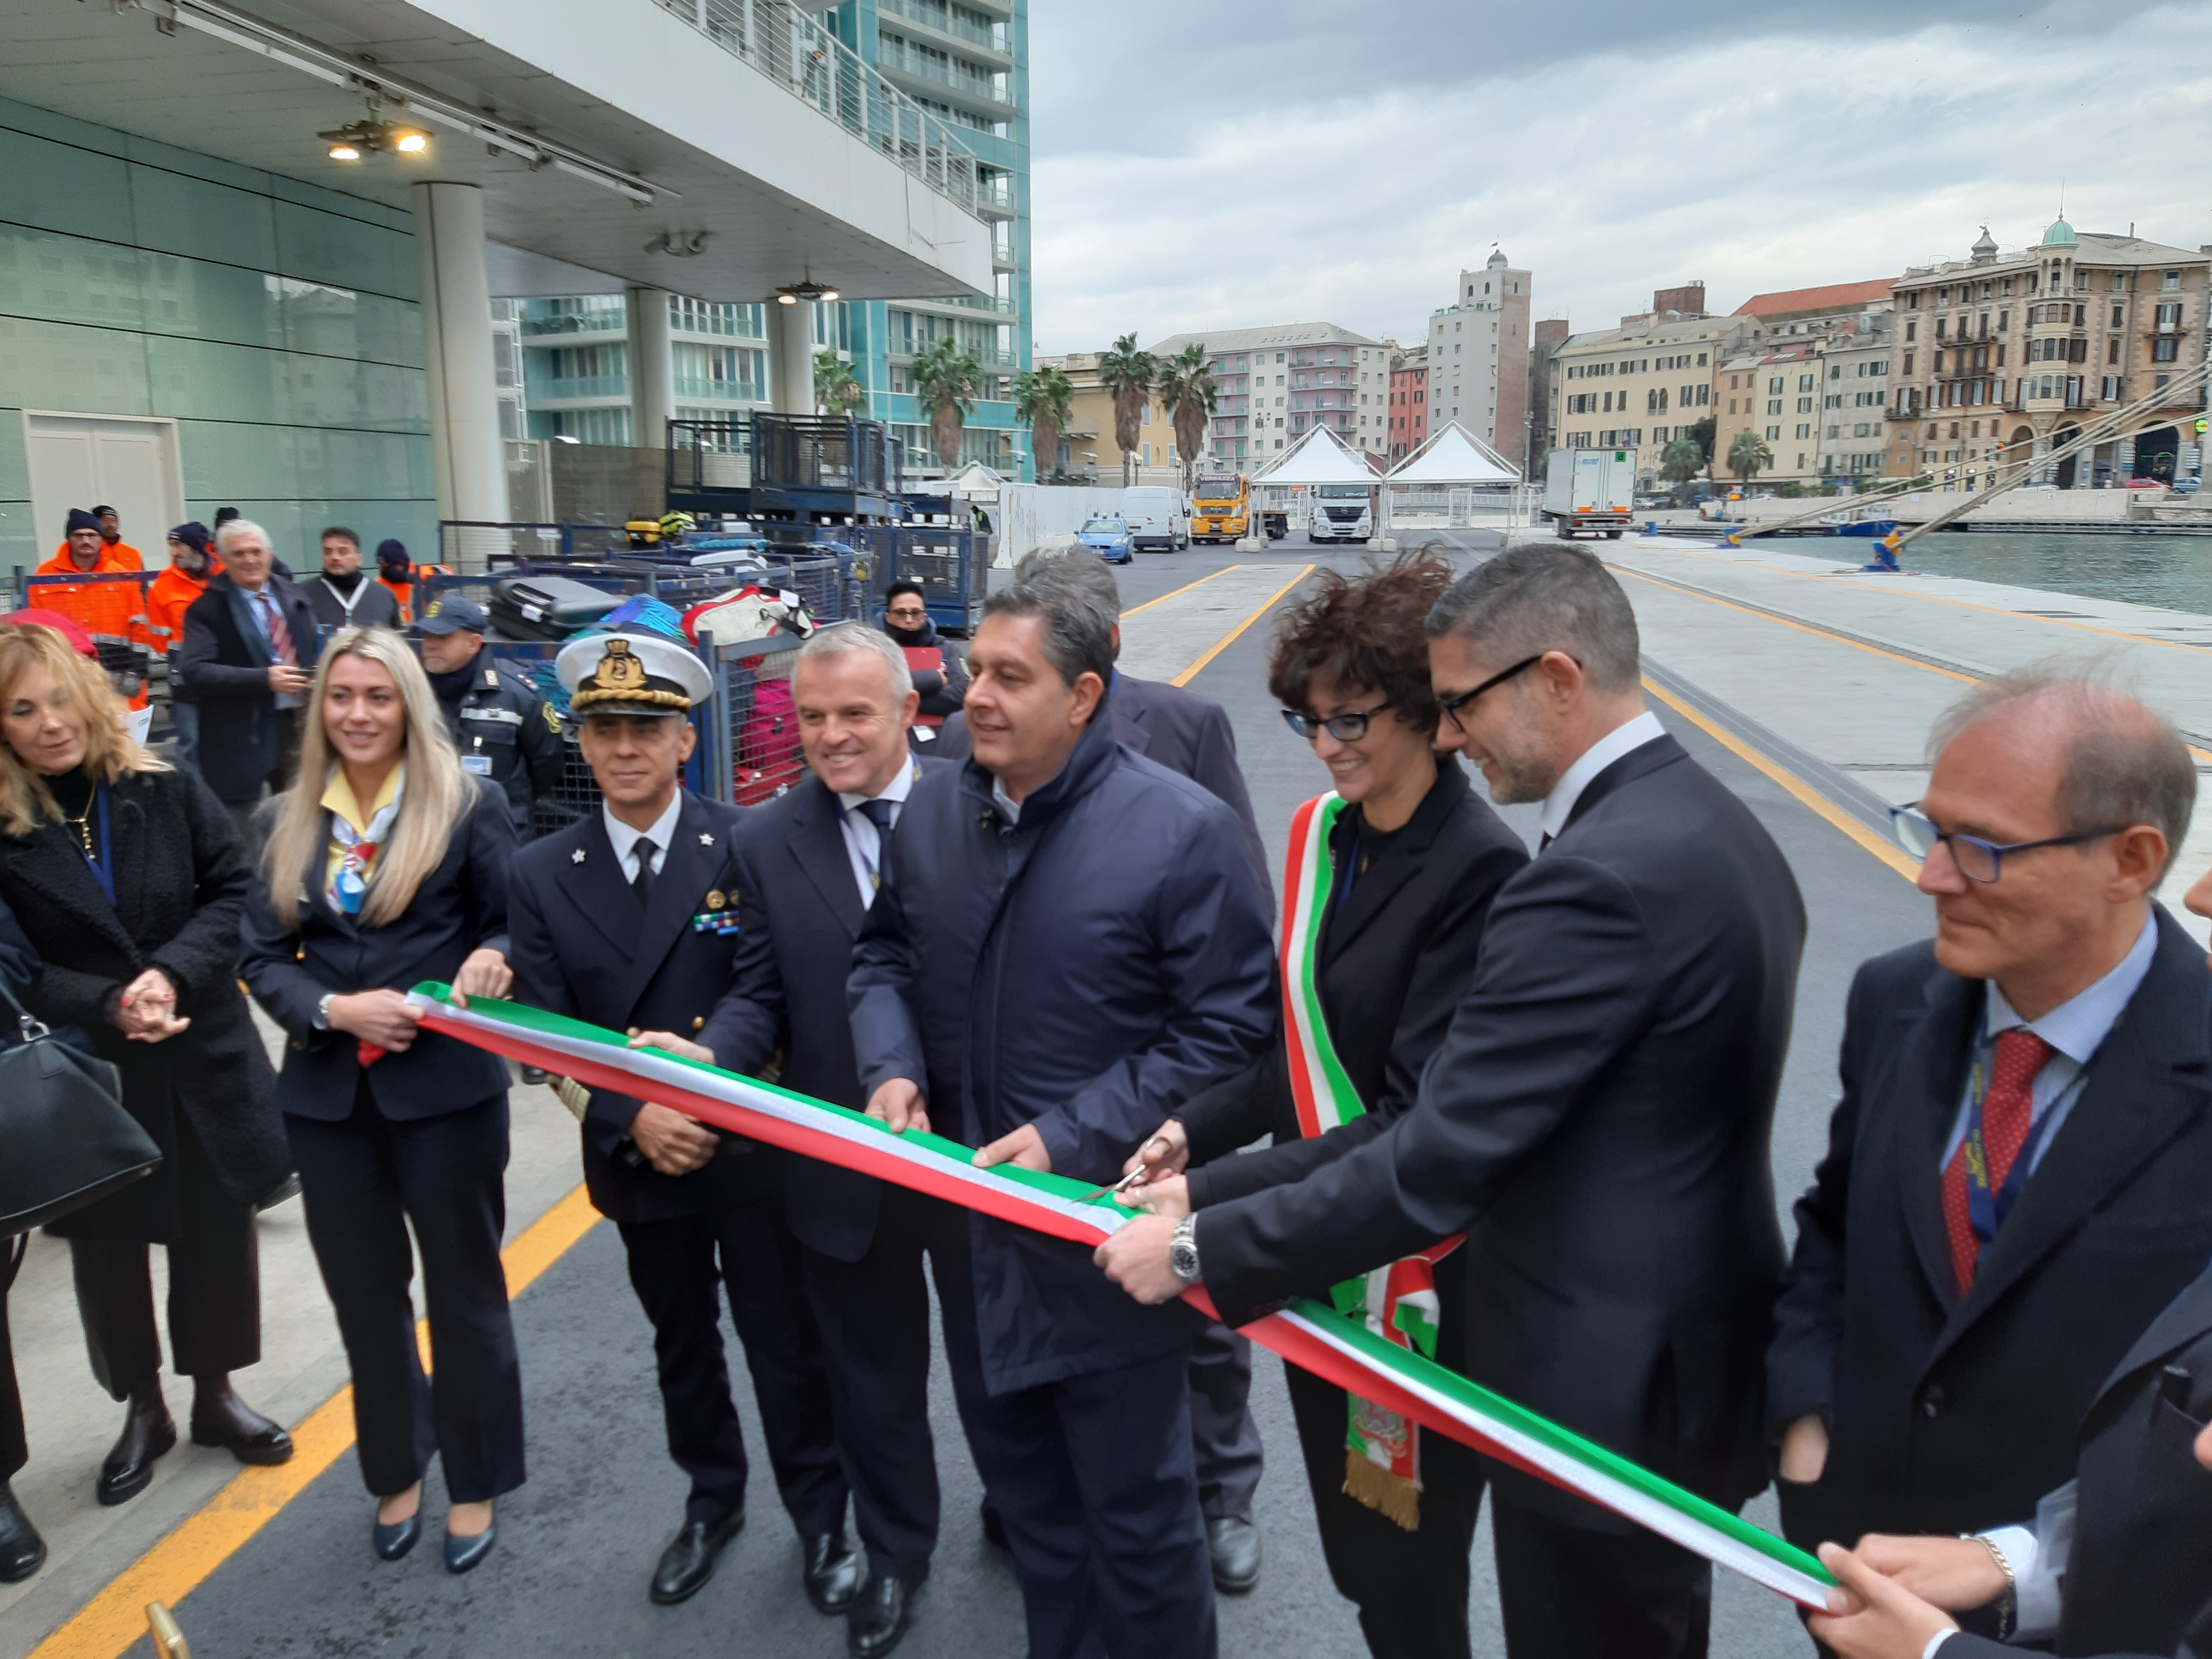 Inauguration of the updated cruise Calata delle Vele quay in Savona